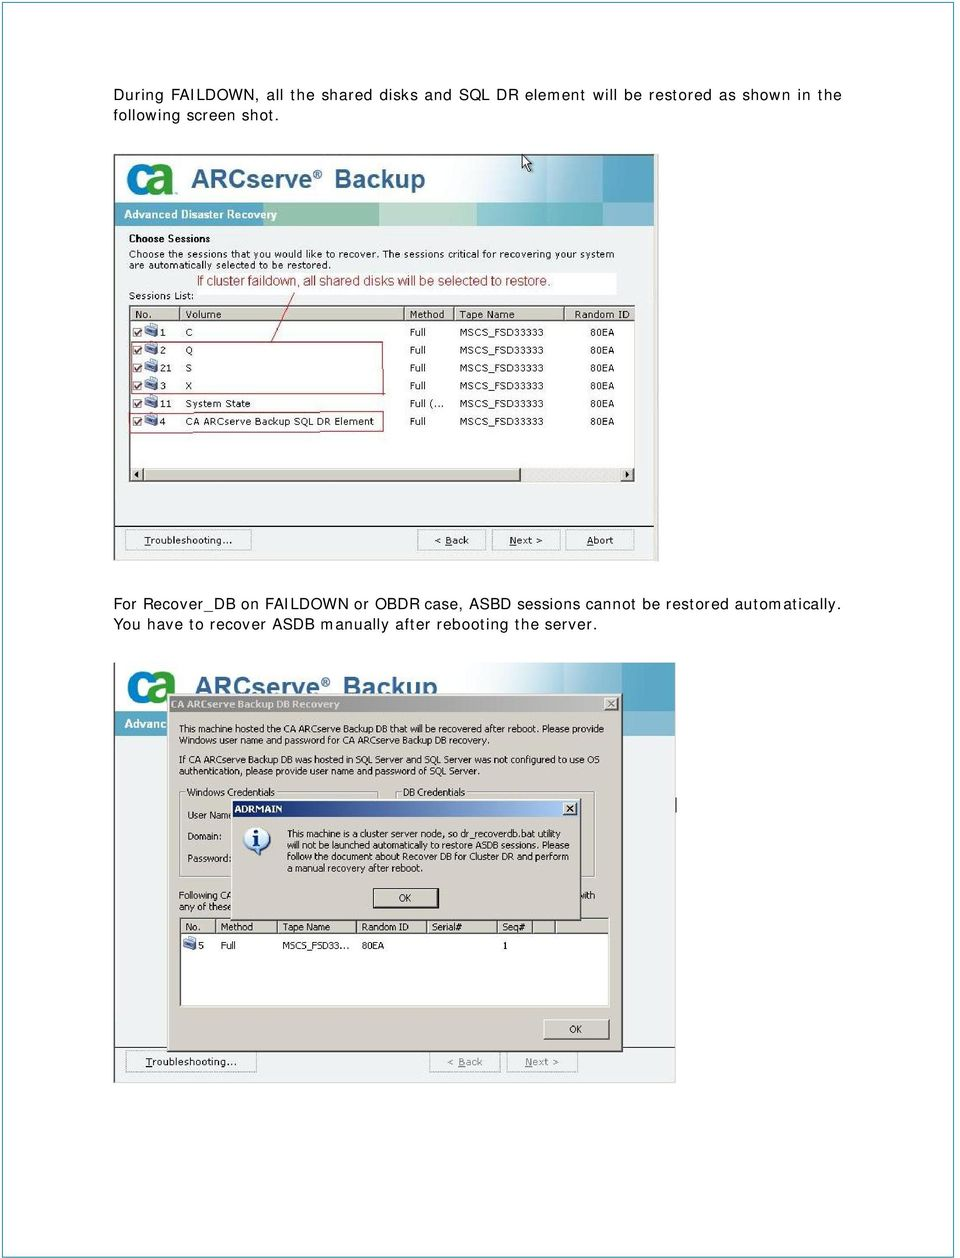 For Recover_DB on FAILDOWN or OBDR case, ASBD sessions cannot be